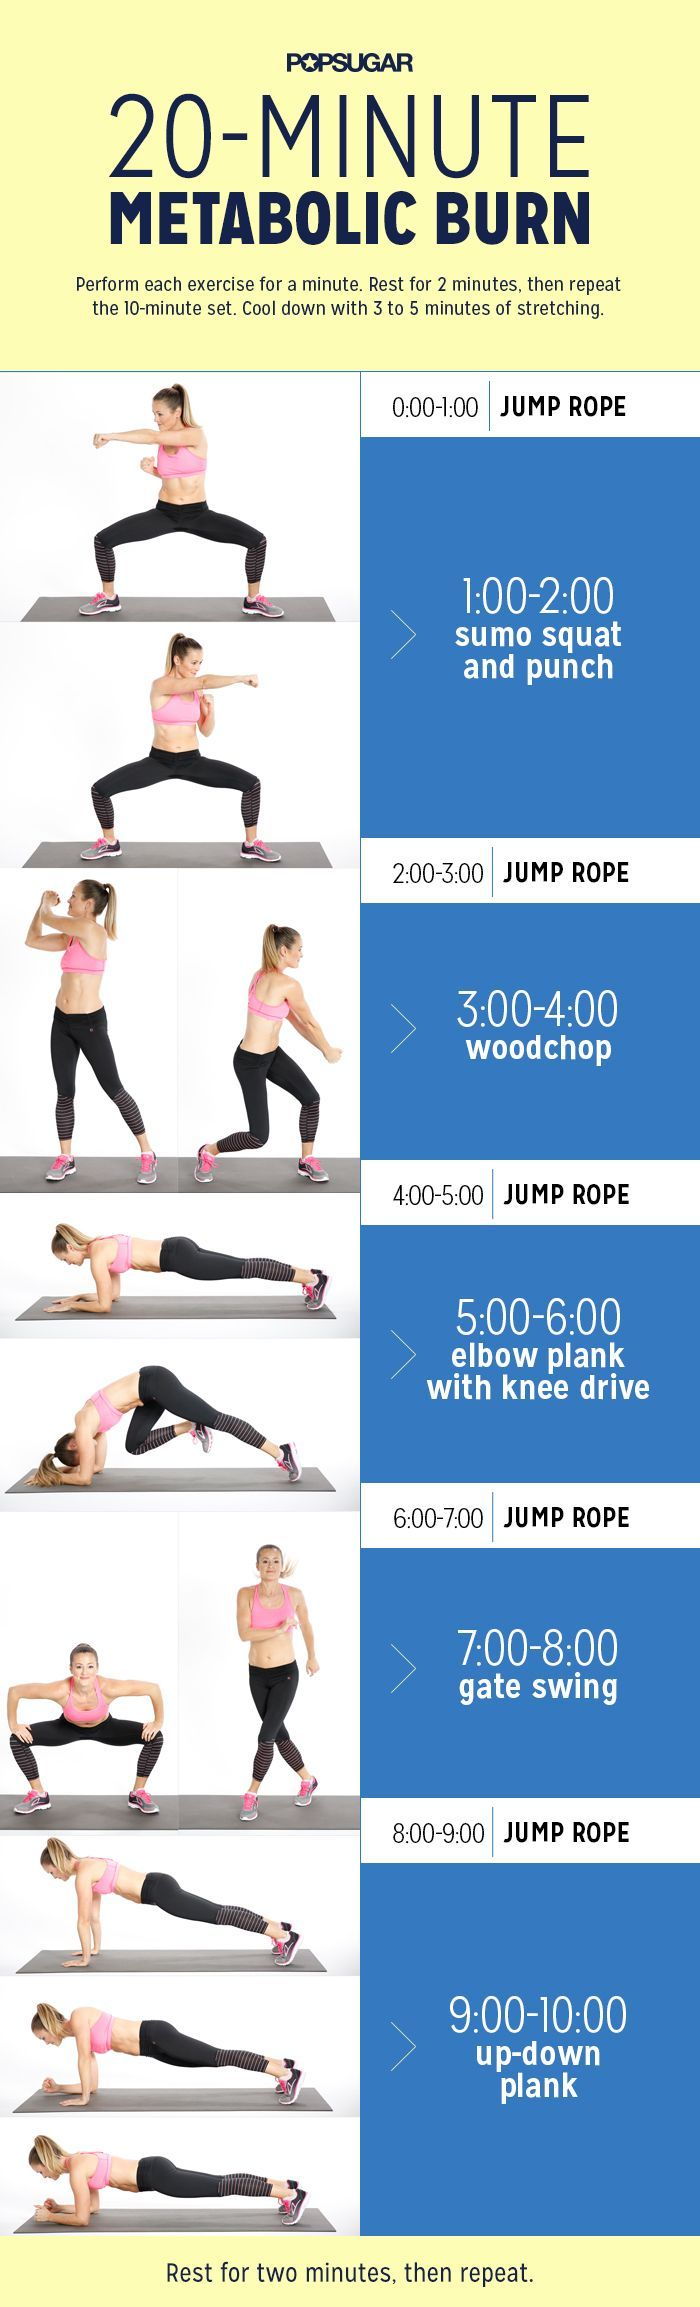 The 20-minute workout is a perfect combination of cardio and strength training